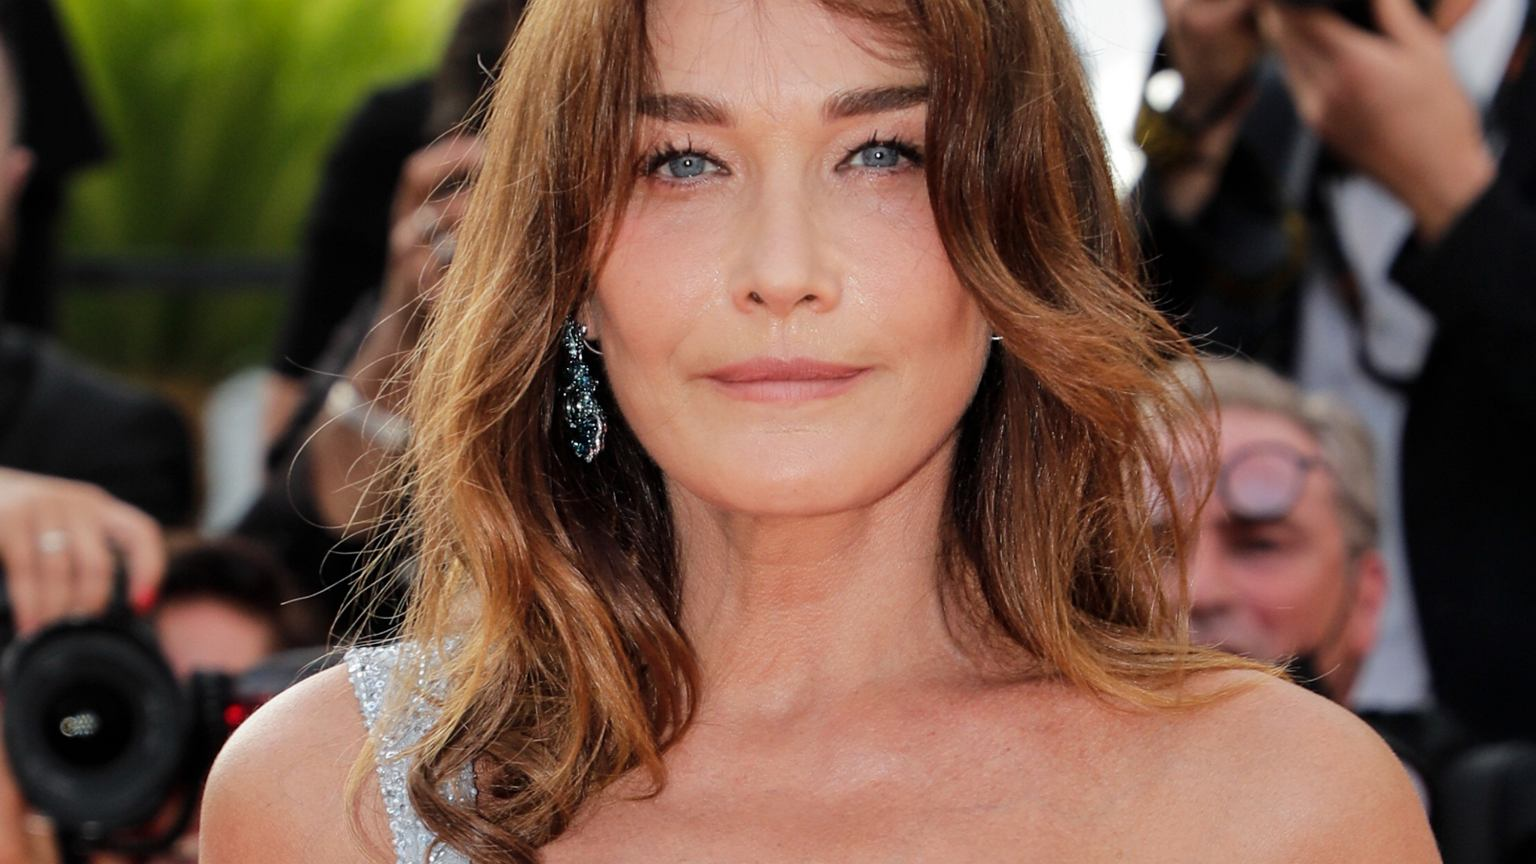 As carla bruni prepares for her debut london gig this weekend, france's former first lady tells craig mclean about the politics of hot pants,. Carla Bruni On The Red Carpet In A Stunning Creation World Today News